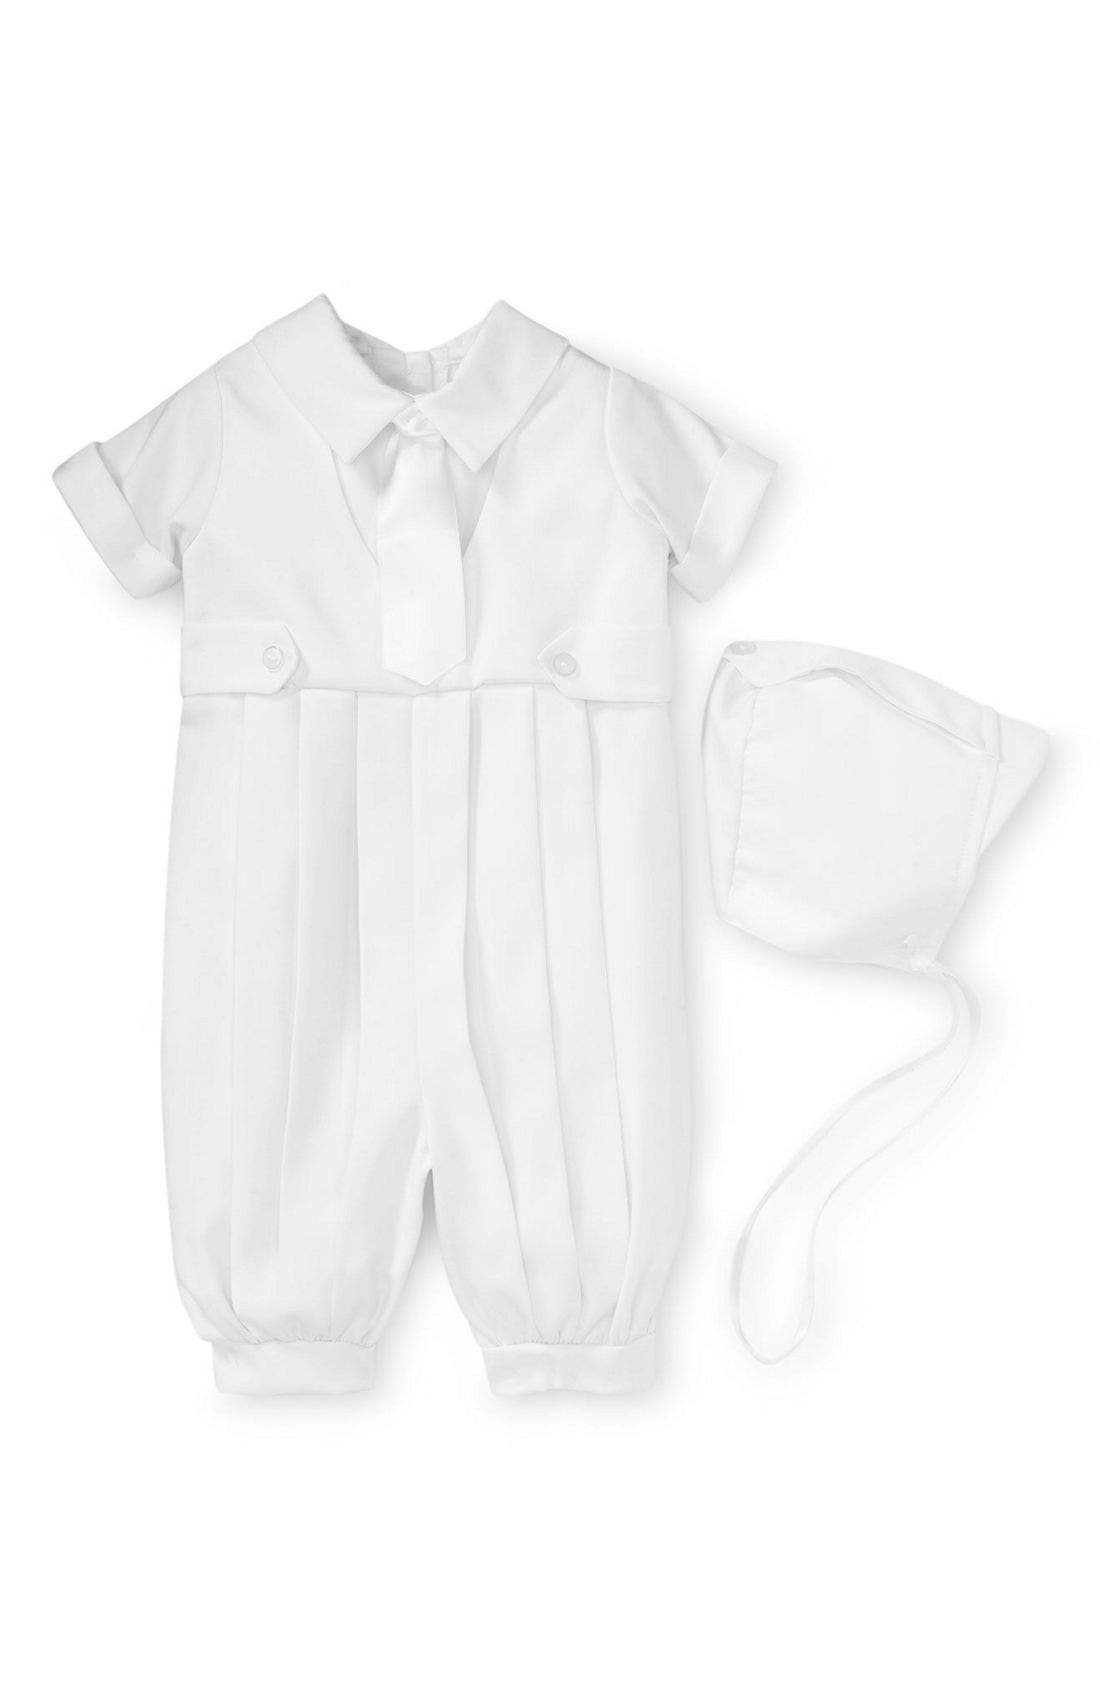 Alternate Image 1 Selected - Little Things Mean a Lot Gabardine Christening Romper (Baby)